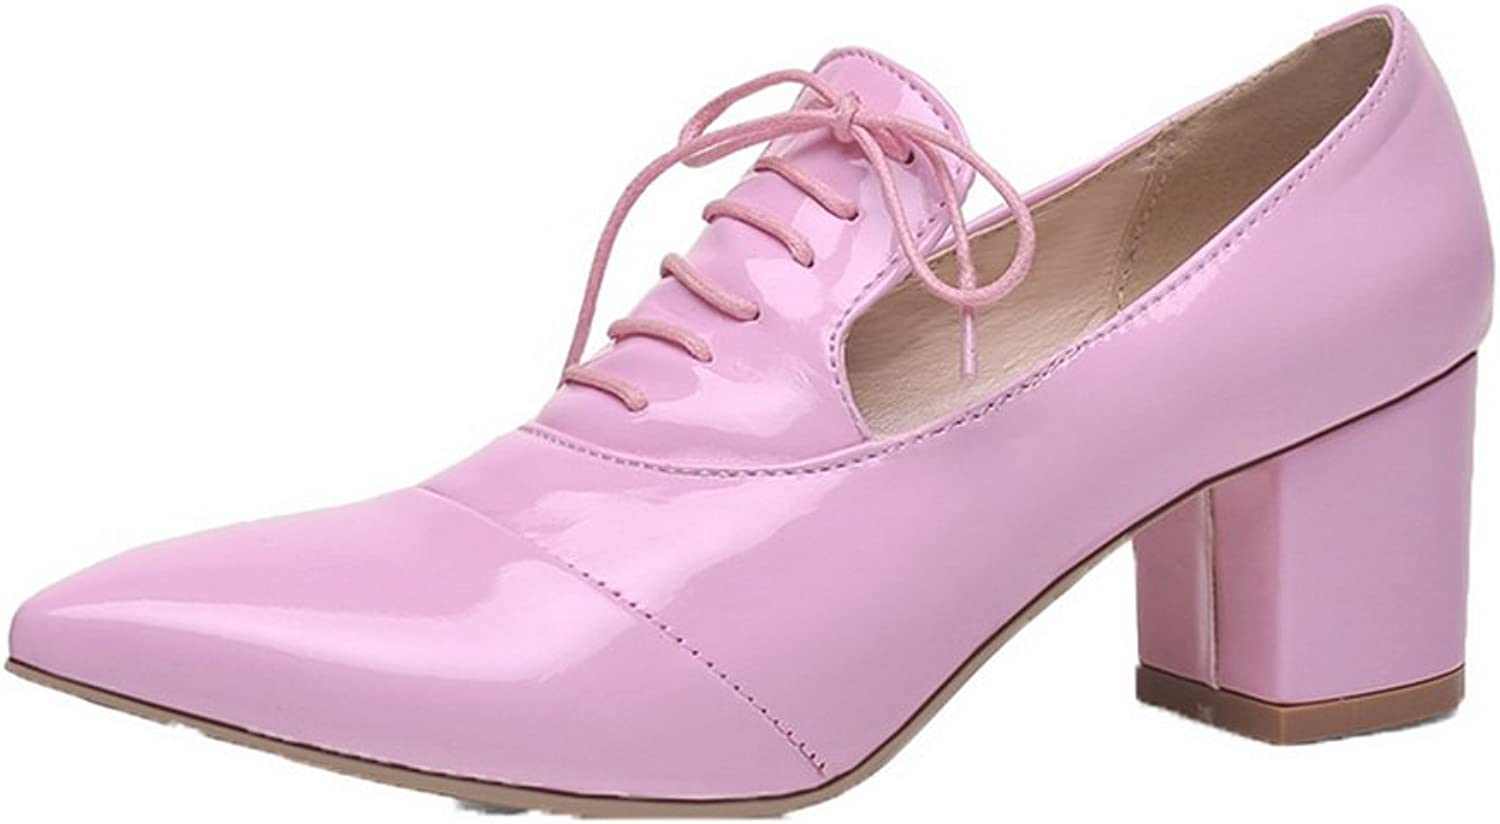 AllhqFashion Women's Pull-On Patent Leather Closed-Toe Kitten-Heels Pumps-shoes